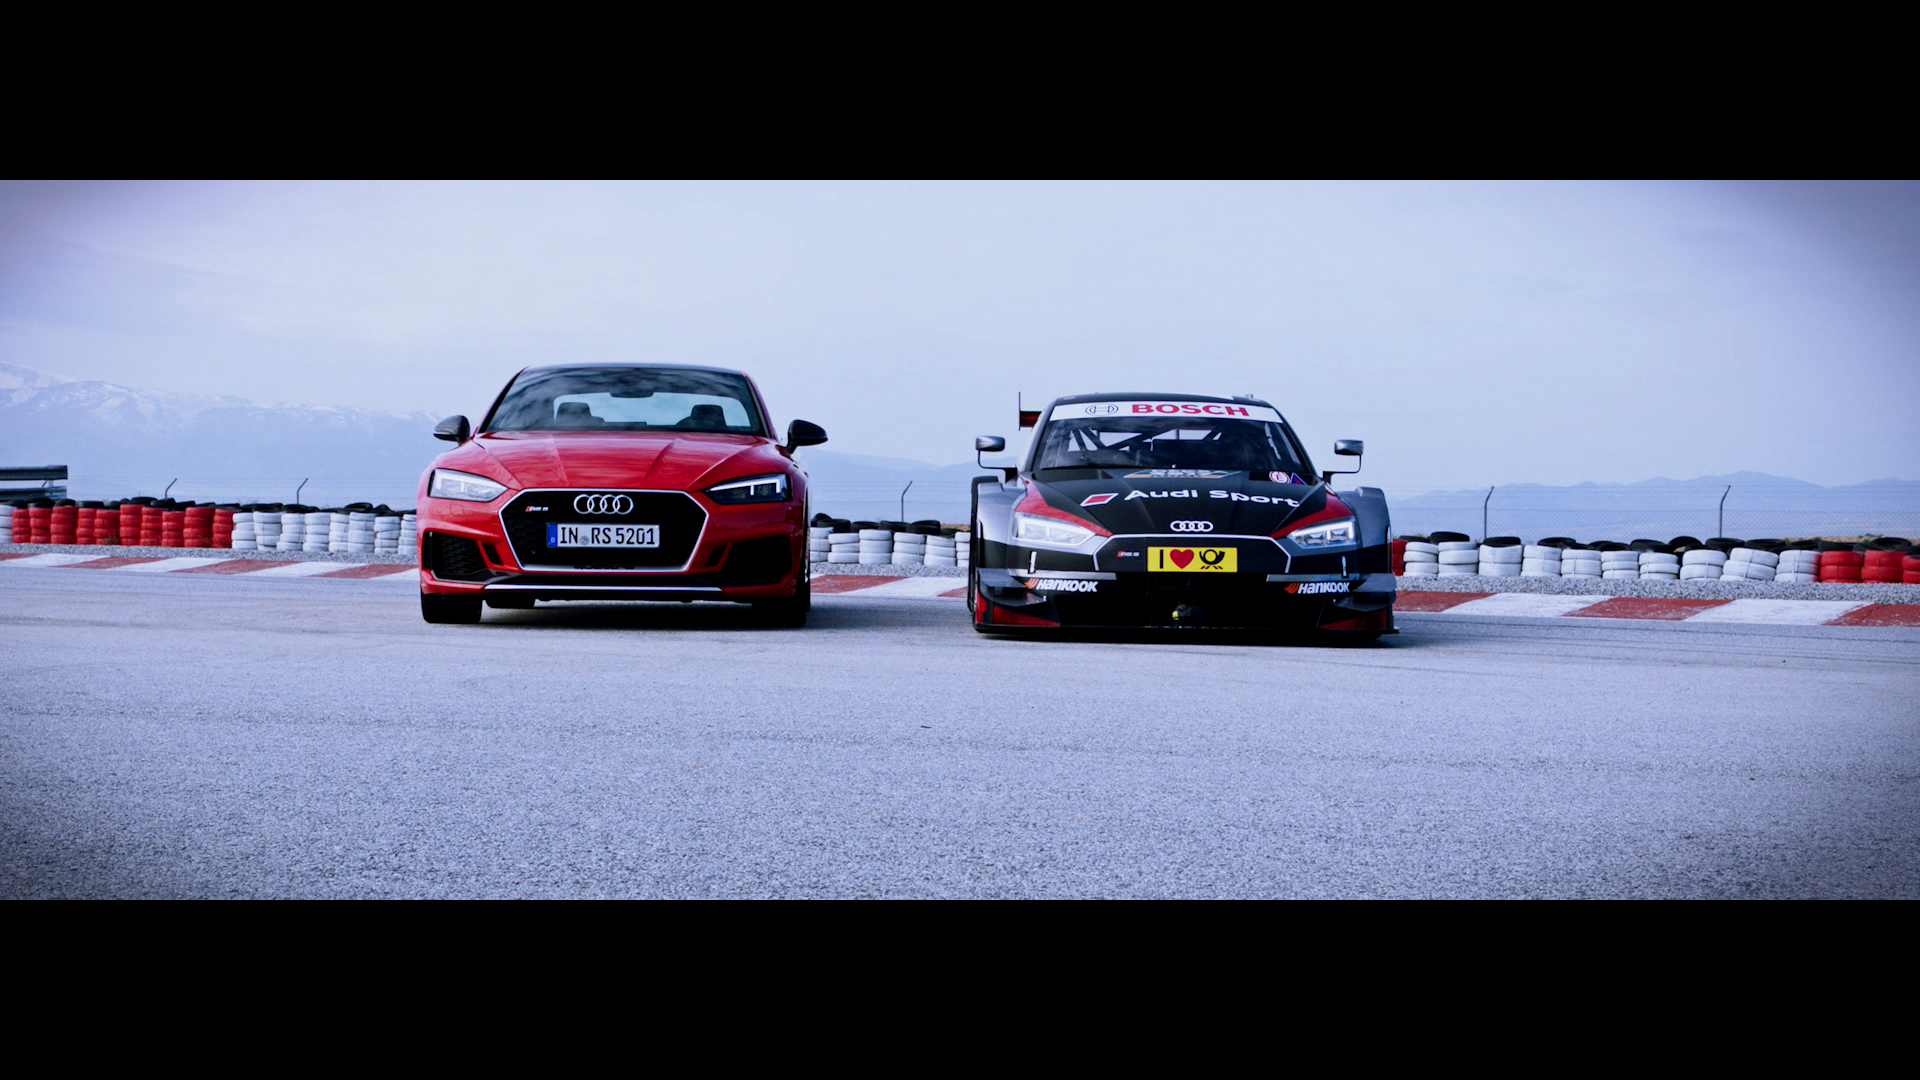 Born on the track, built for the road - Audi RS 5 and RS 5 DTM